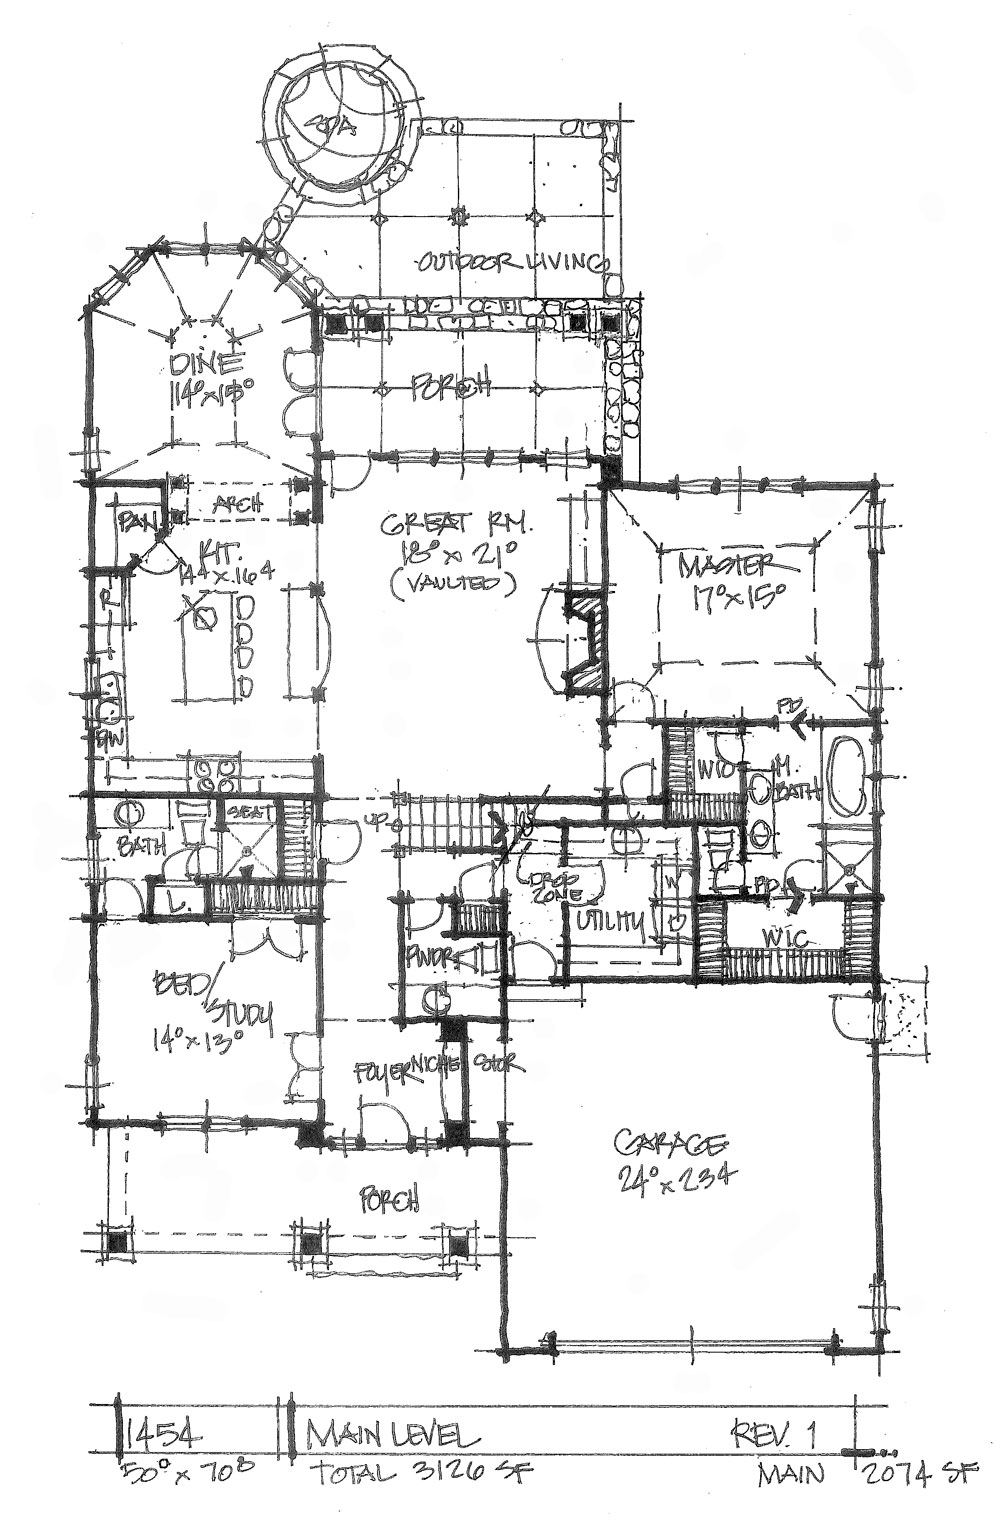 Check out the first floor plan of house plan 1454.